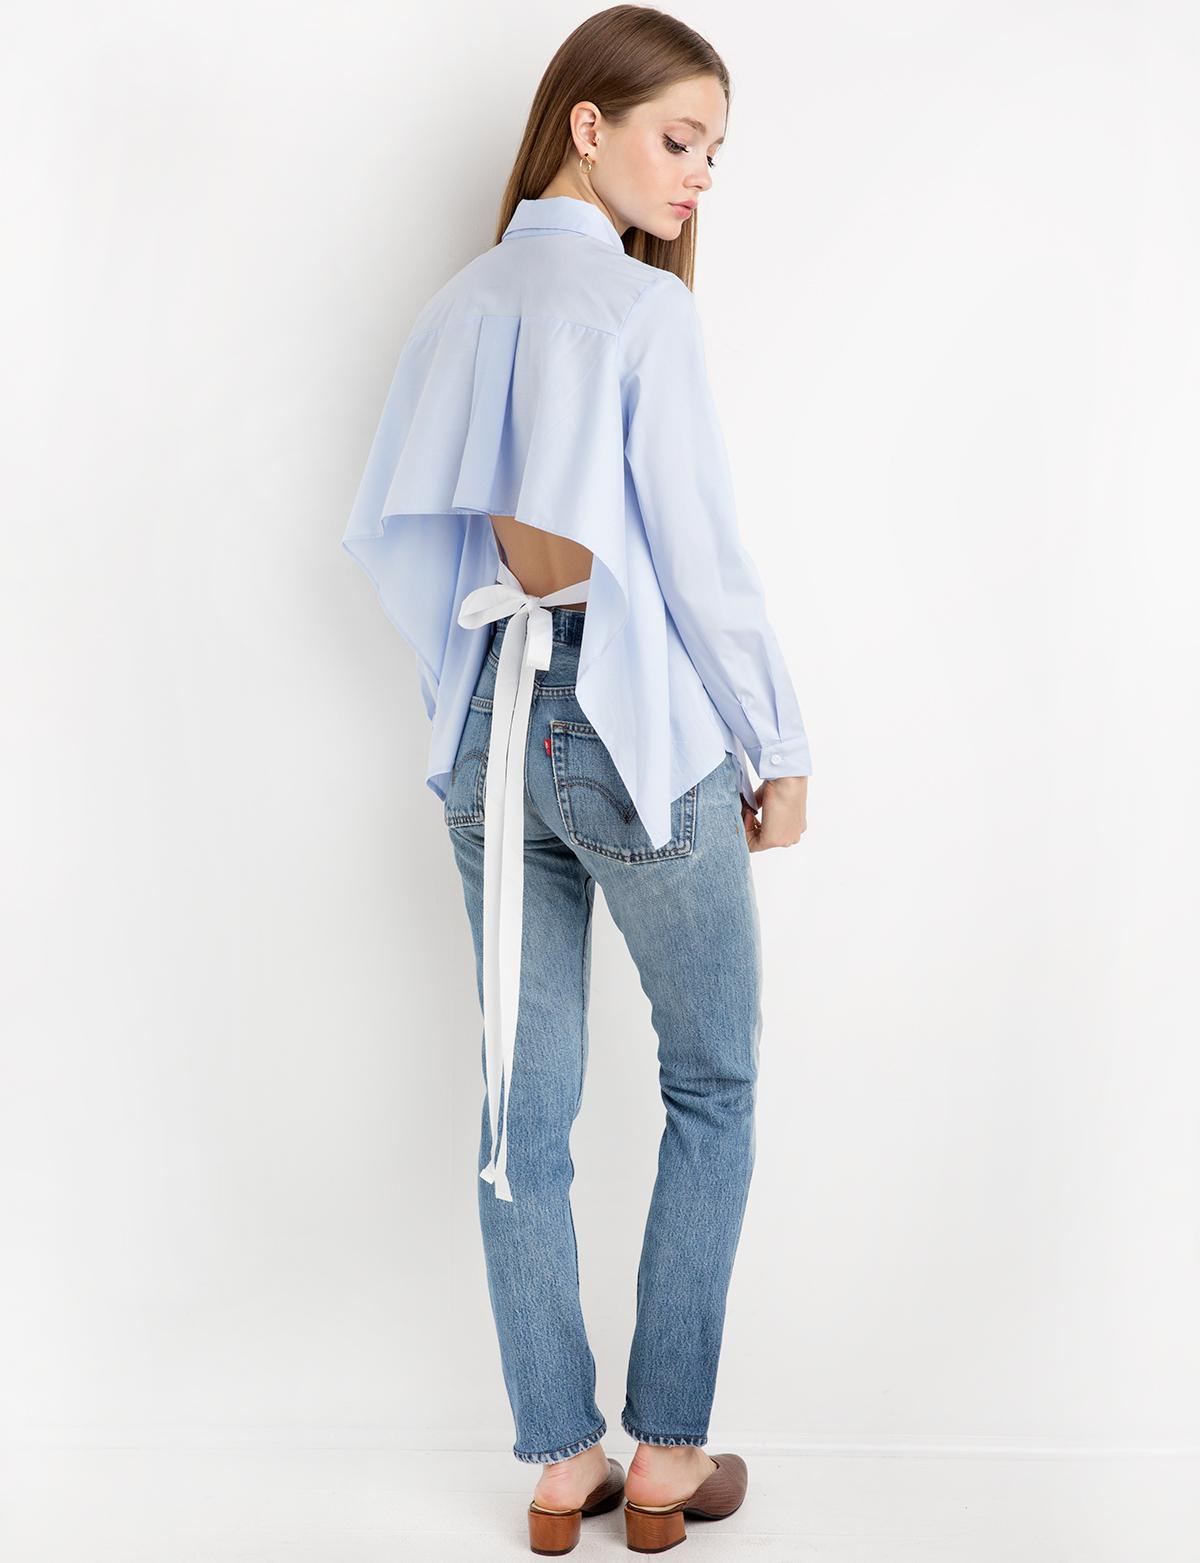 Lyst pixie market blue tie back shirt in blue for How to make a tie back shirt